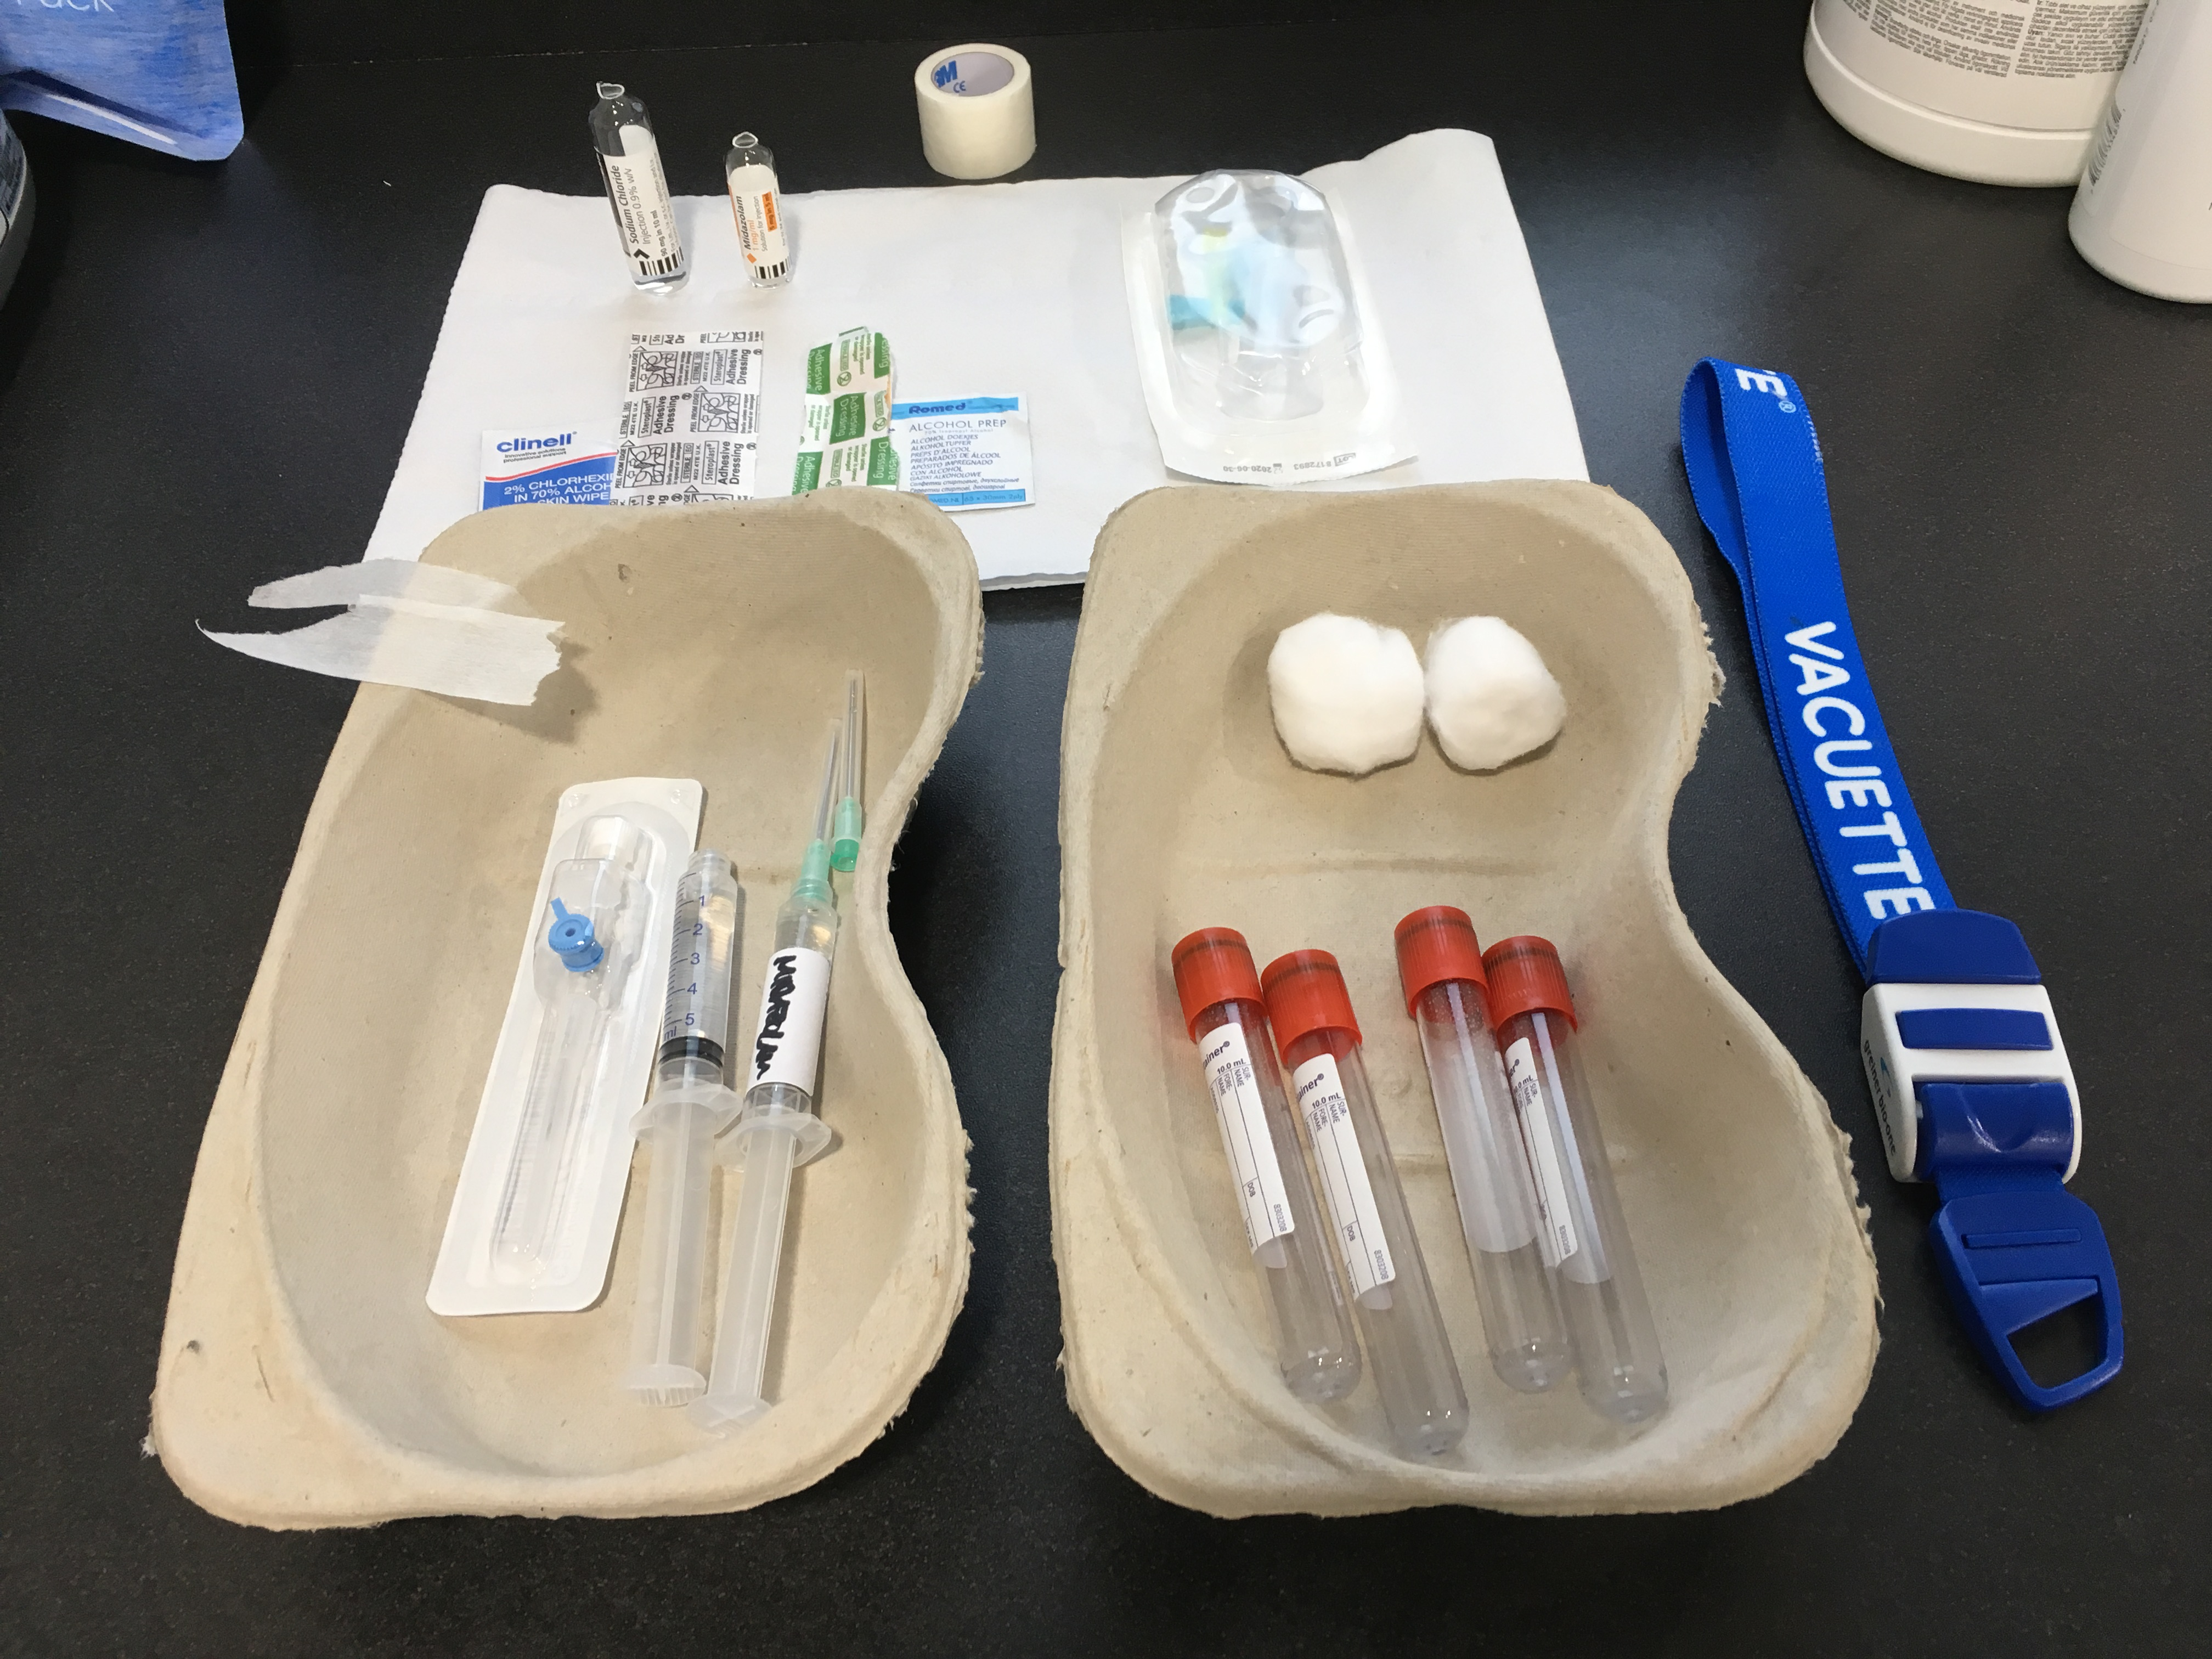 IV Sedation Course for Beginners